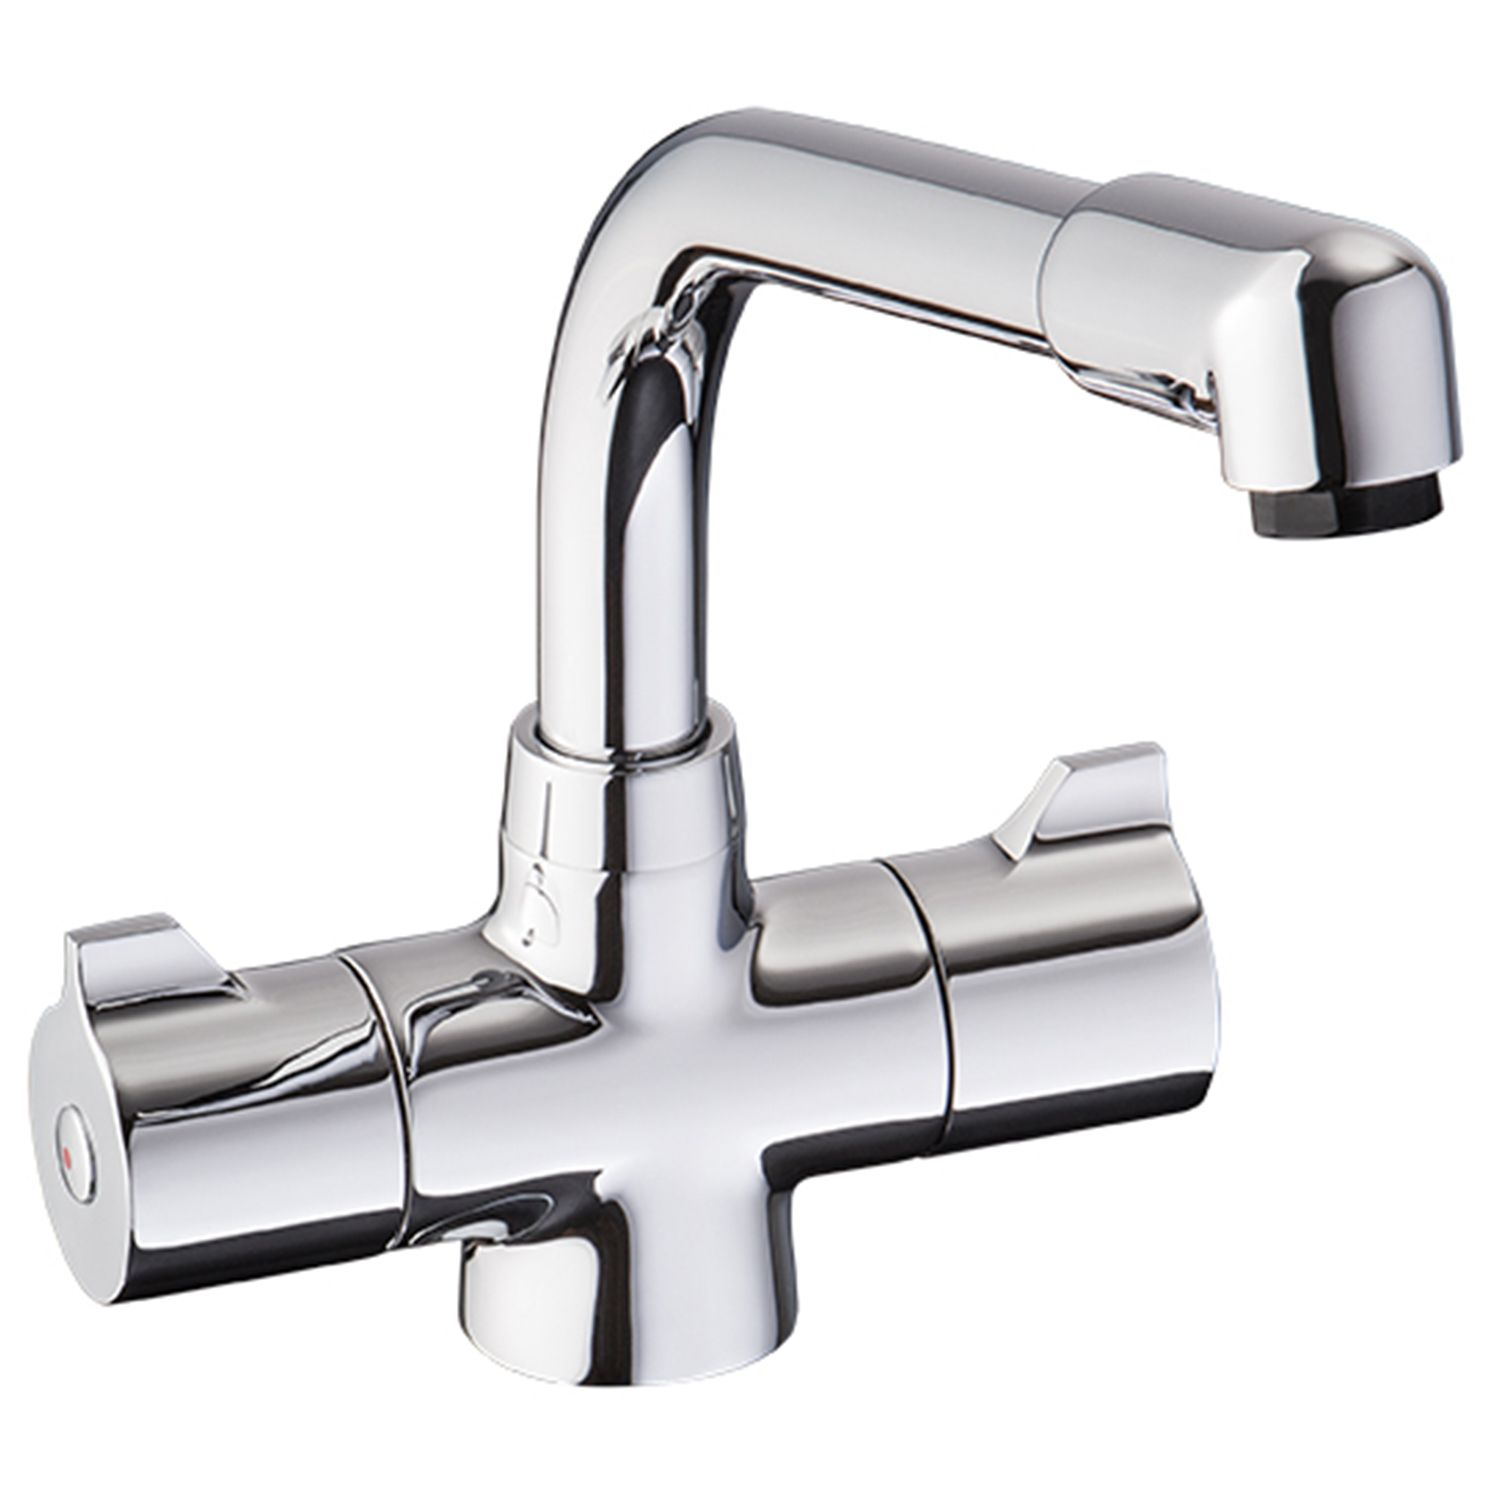 Bluci Aveto Wras Approved Kitchen Tap  Sinkstapscom. Granite Kitchen Sinks. Kitchen Sink Backpack. Clark Kitchen Sinks. White Single Bowl Kitchen Sink. Kitchen Sinks Reviews. Clog Kitchen Sink. Pictures Of Kitchen Faucets And Sinks. Double Sink For Kitchen